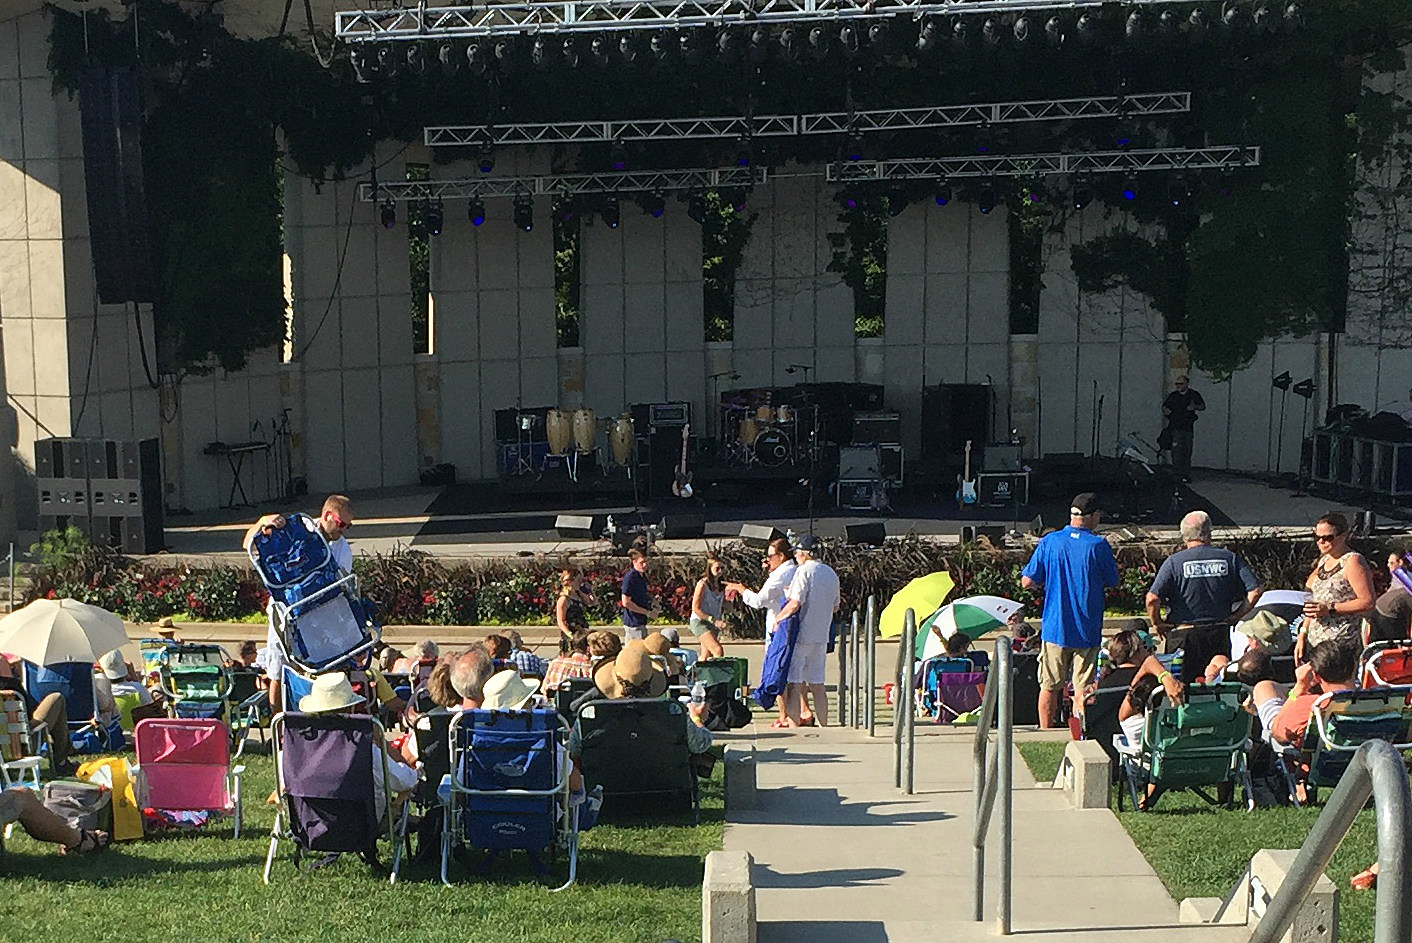 Frederik Meijer Gardens Announces Their 2017 Summer Concert Series Lineup